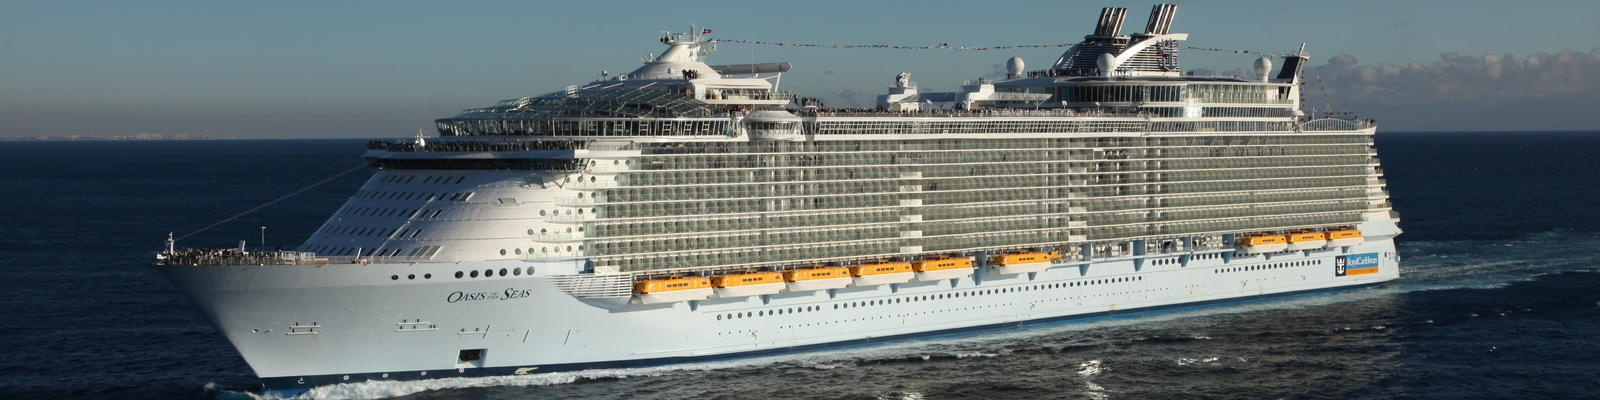 Royal Caribbean Ups Its Dining Game, Hints at New Concepts for Oasis of the Seas